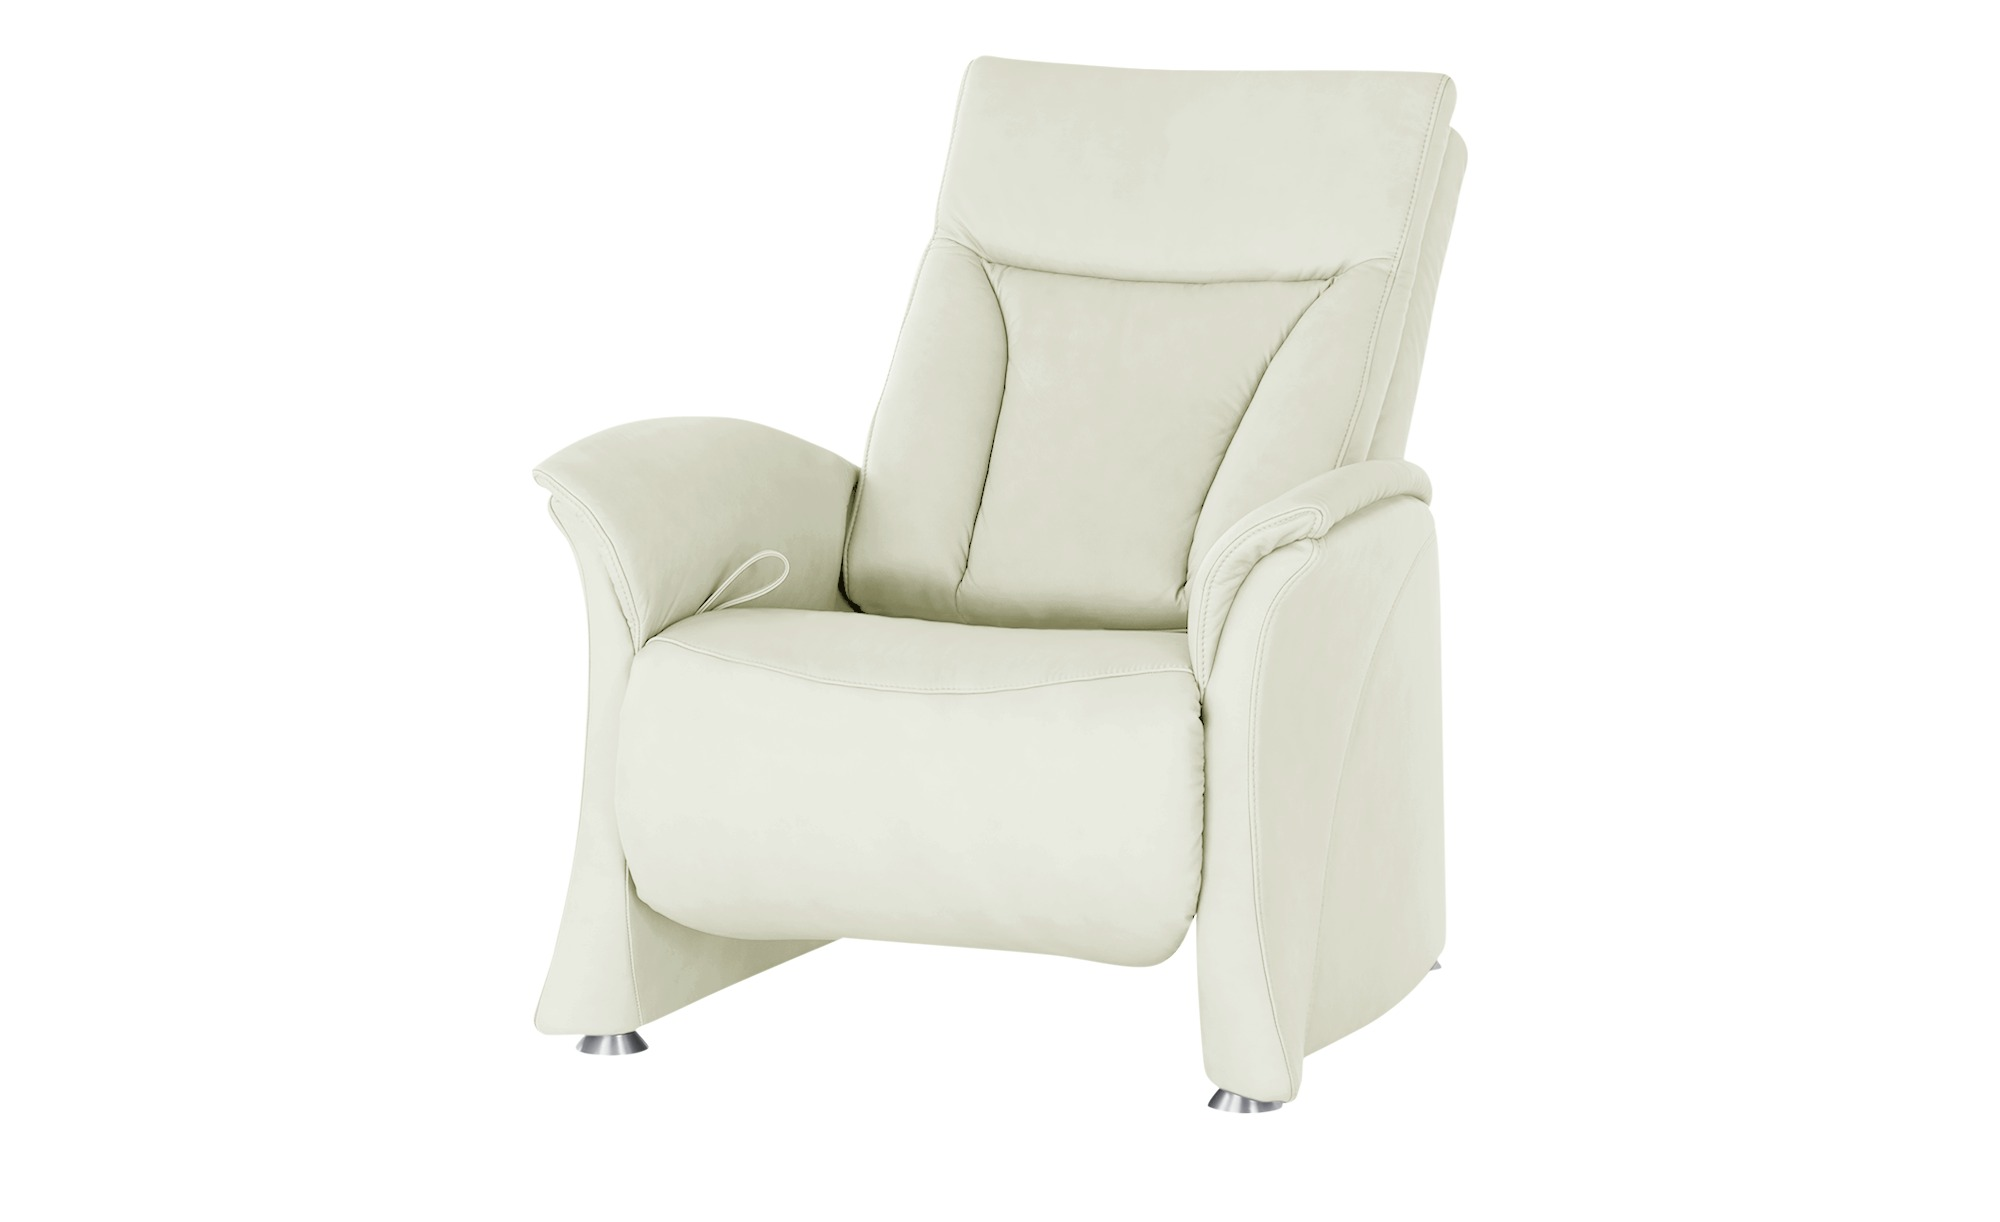 himolla Sessel mit Relaxfunktion  4010